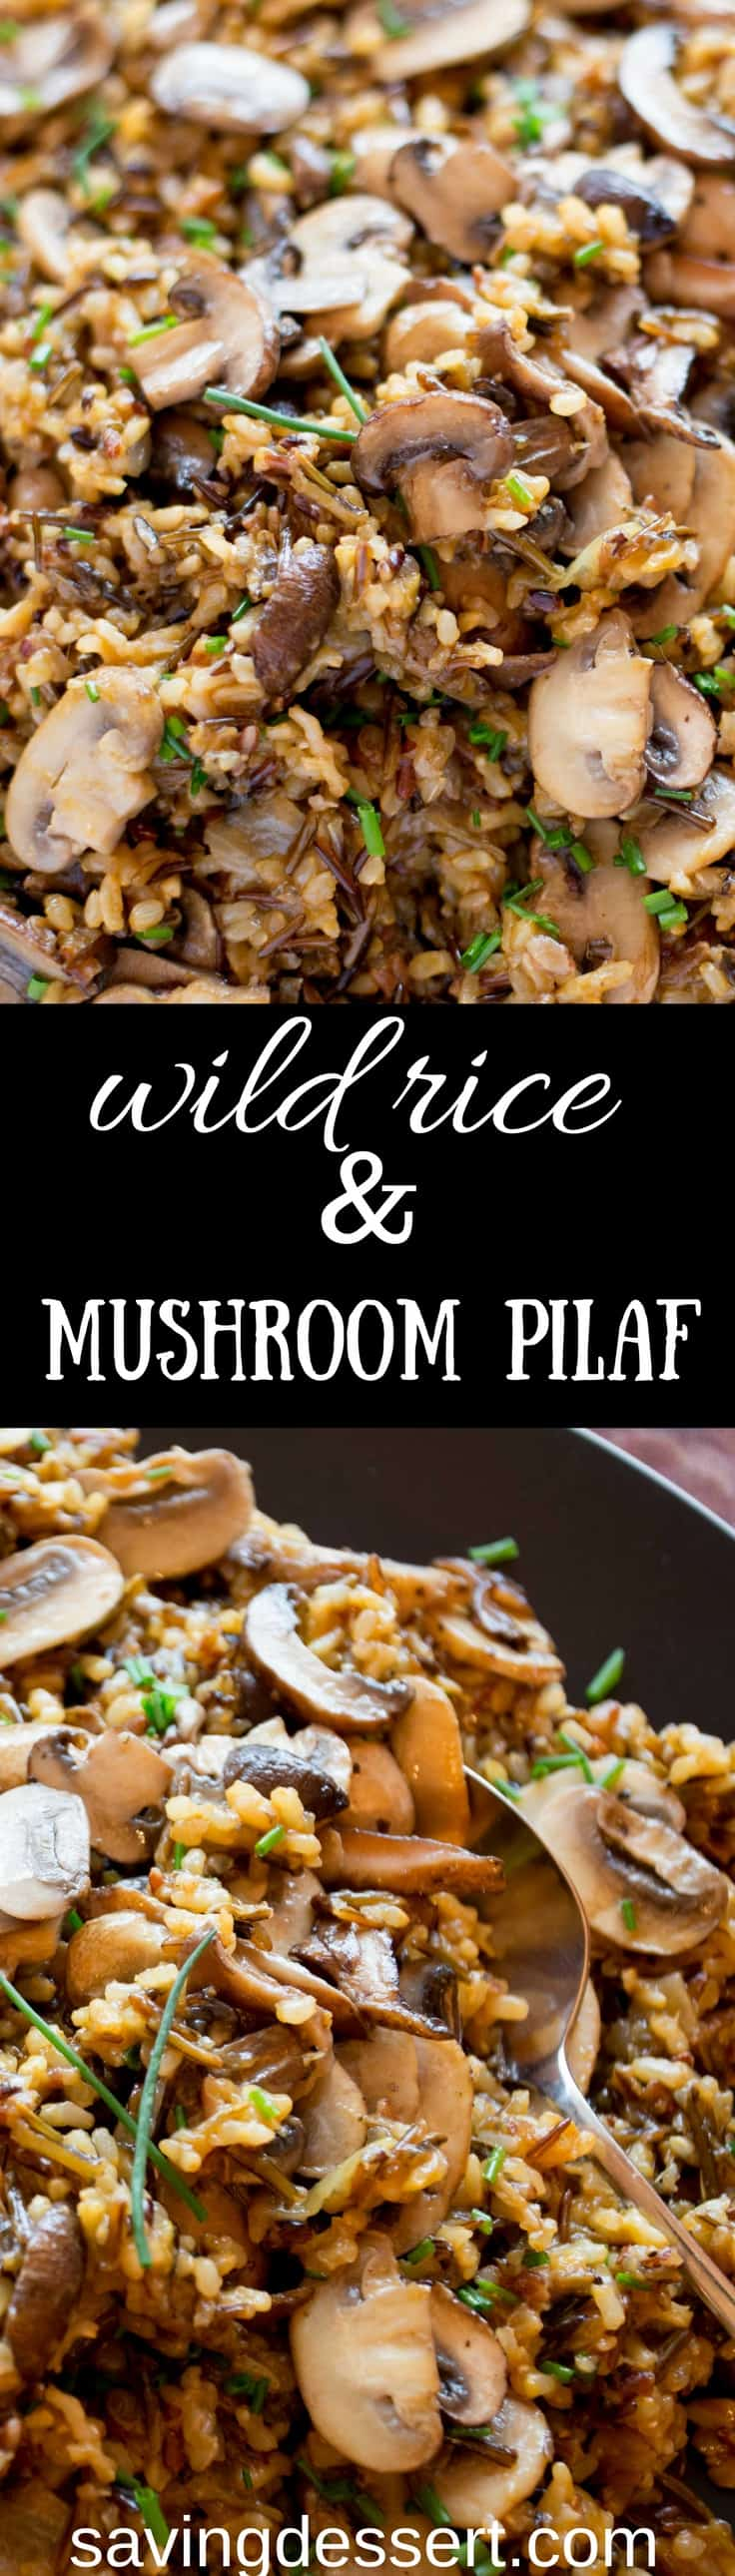 Wild Rice and Mushroom Pilaf -An easy and delicious make-ahead side dish. Loaded with a variety of mushrooms, this pilaf is filling with a nutty flavor from the wild rice blend. www.savingdessert.com #savingroomfordessert #wildrice #mushroom #ricepilaf #makeahead #sidedish #mushrooms